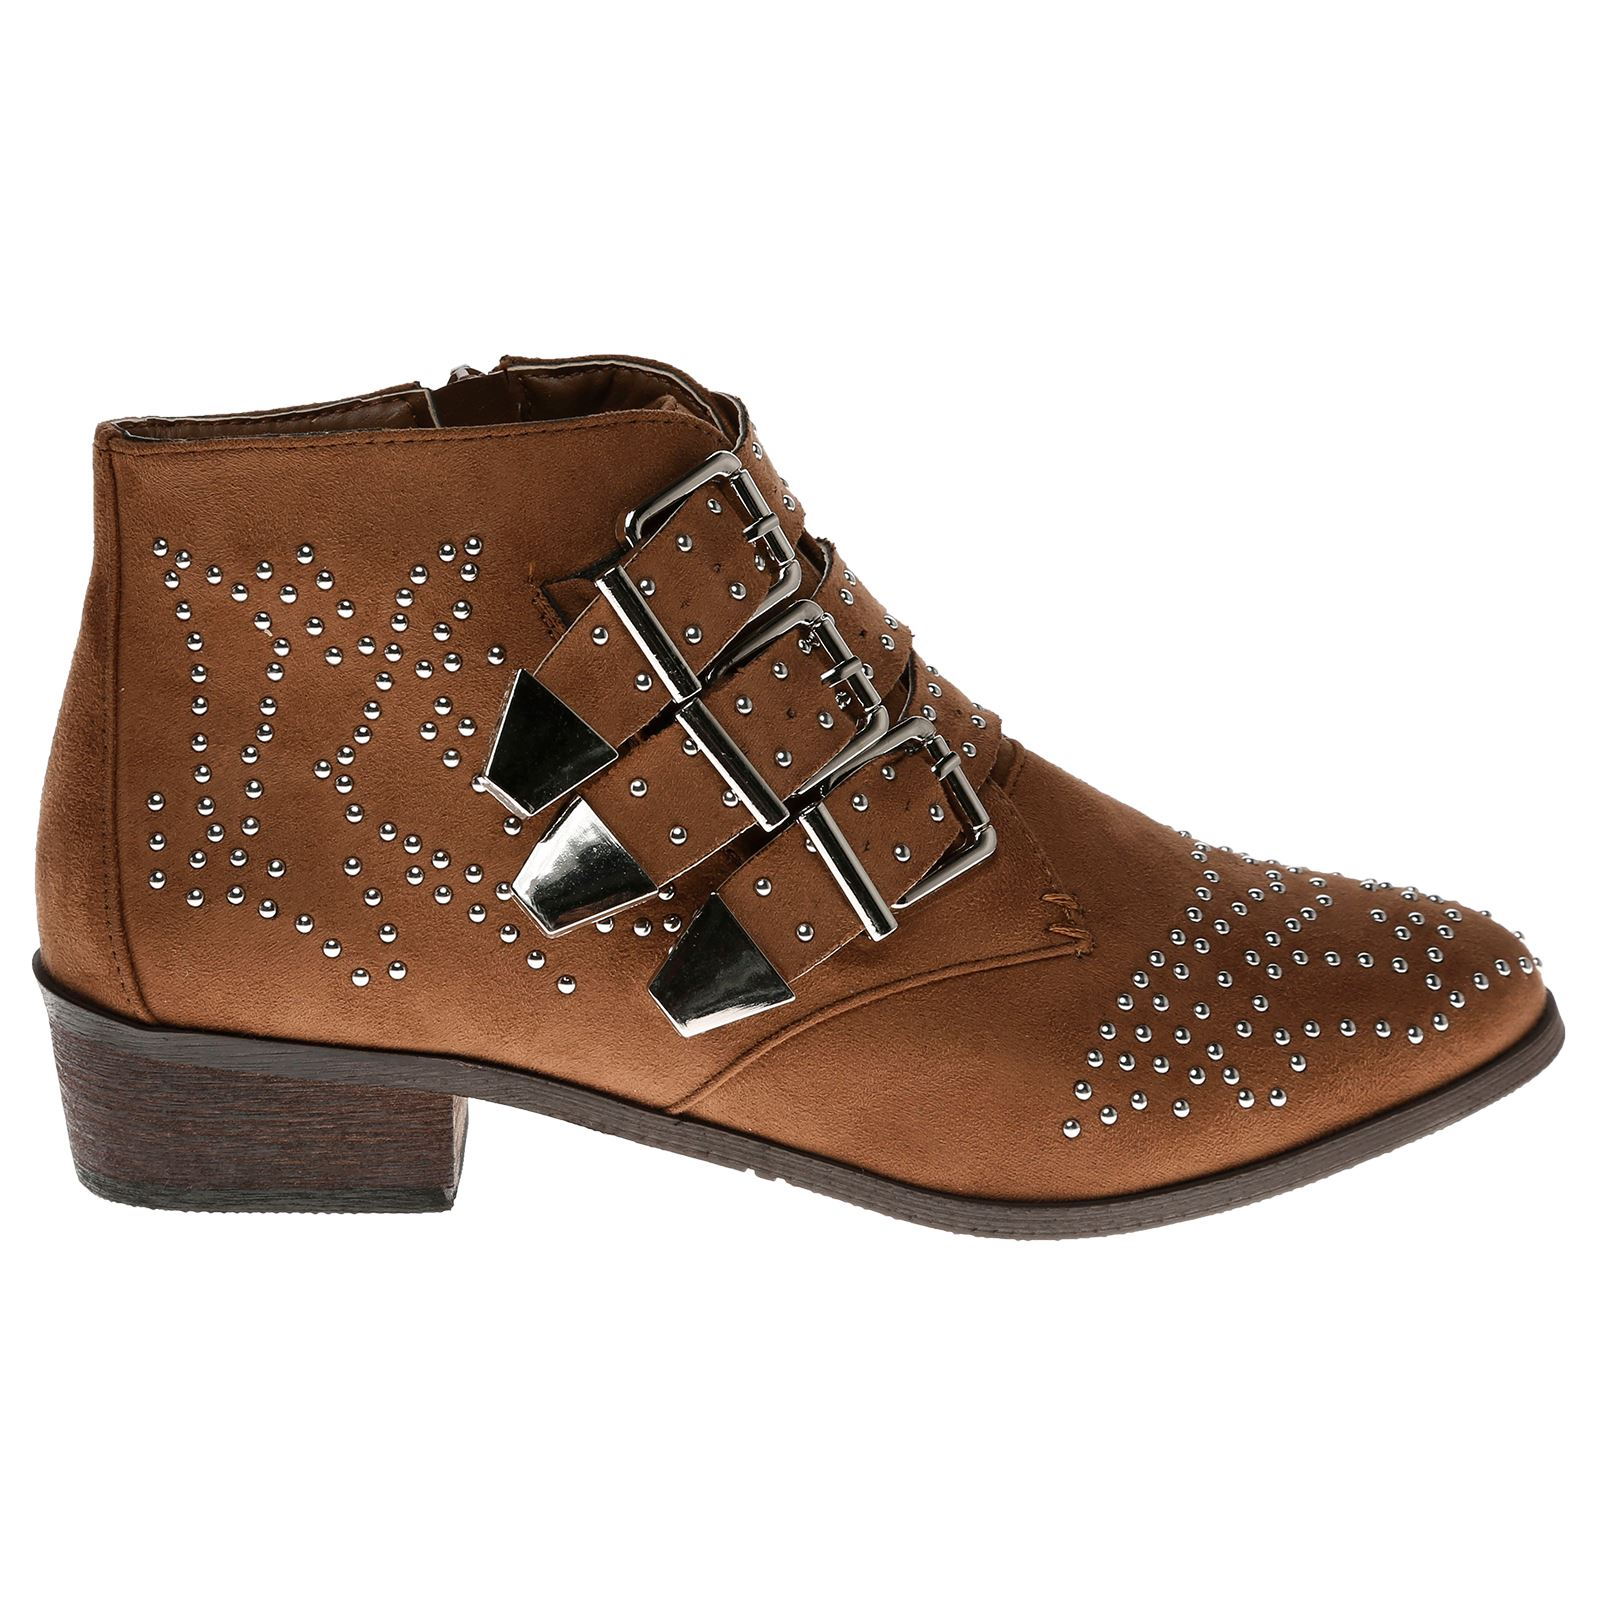 Liv-Womens-Flats-Low-Heels-Buckle-Strappy-Biker-Ankle-Boots-Ladies-Shoes-Studded thumbnail 15